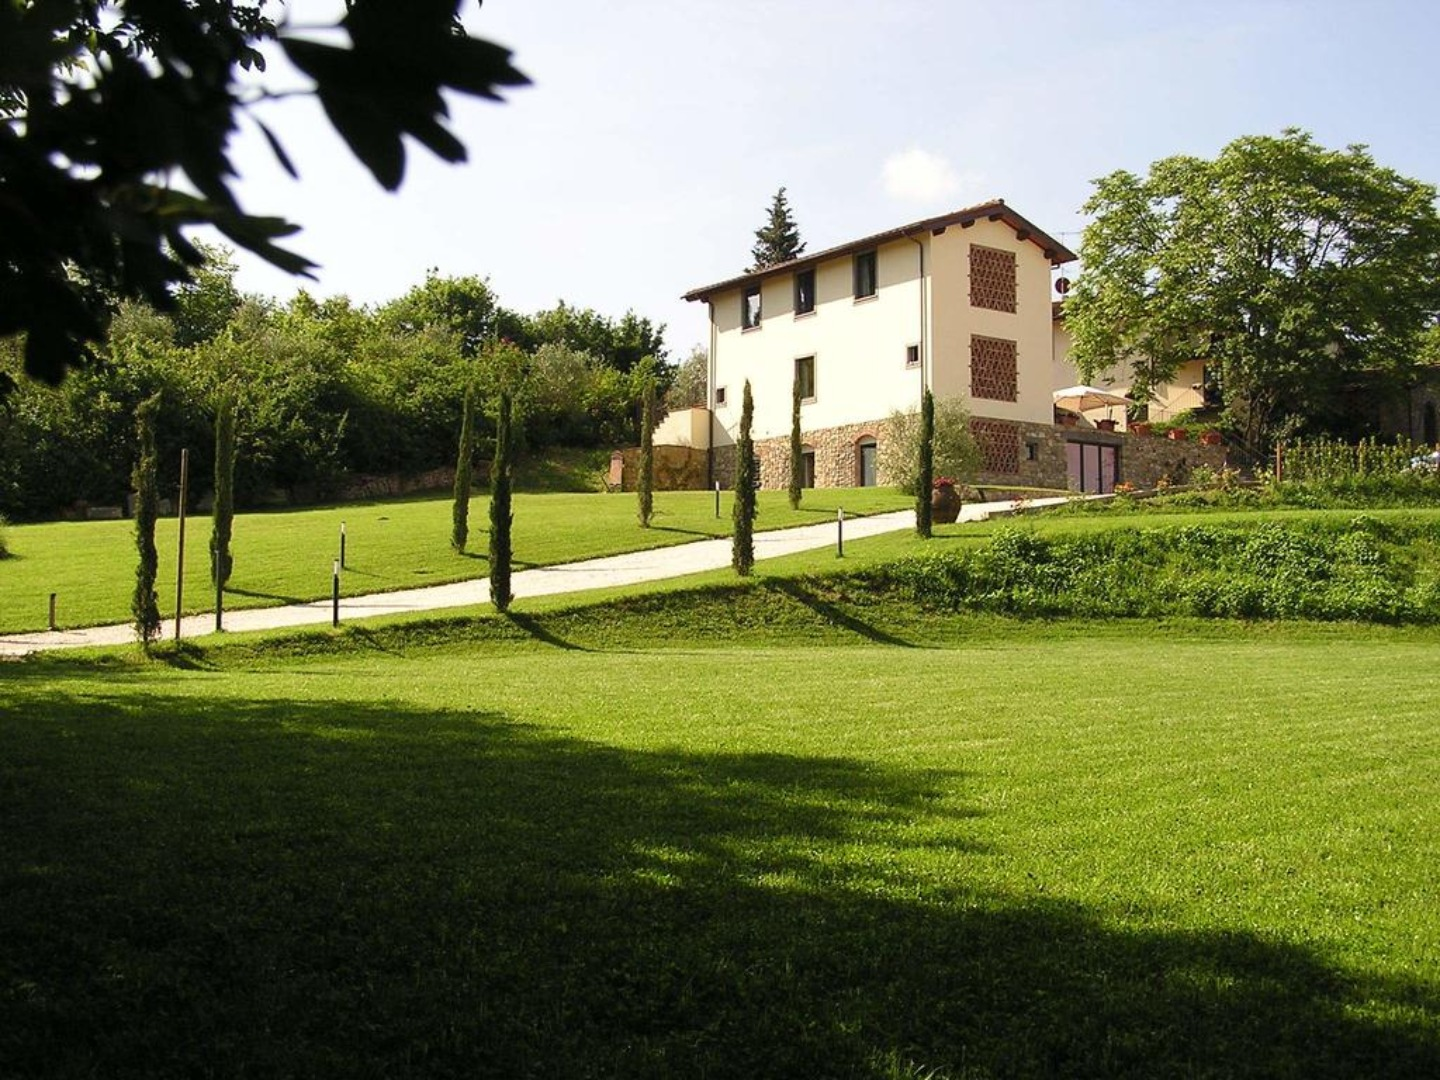 A large green field with trees in the background at Il Poggiolo delle Rose.